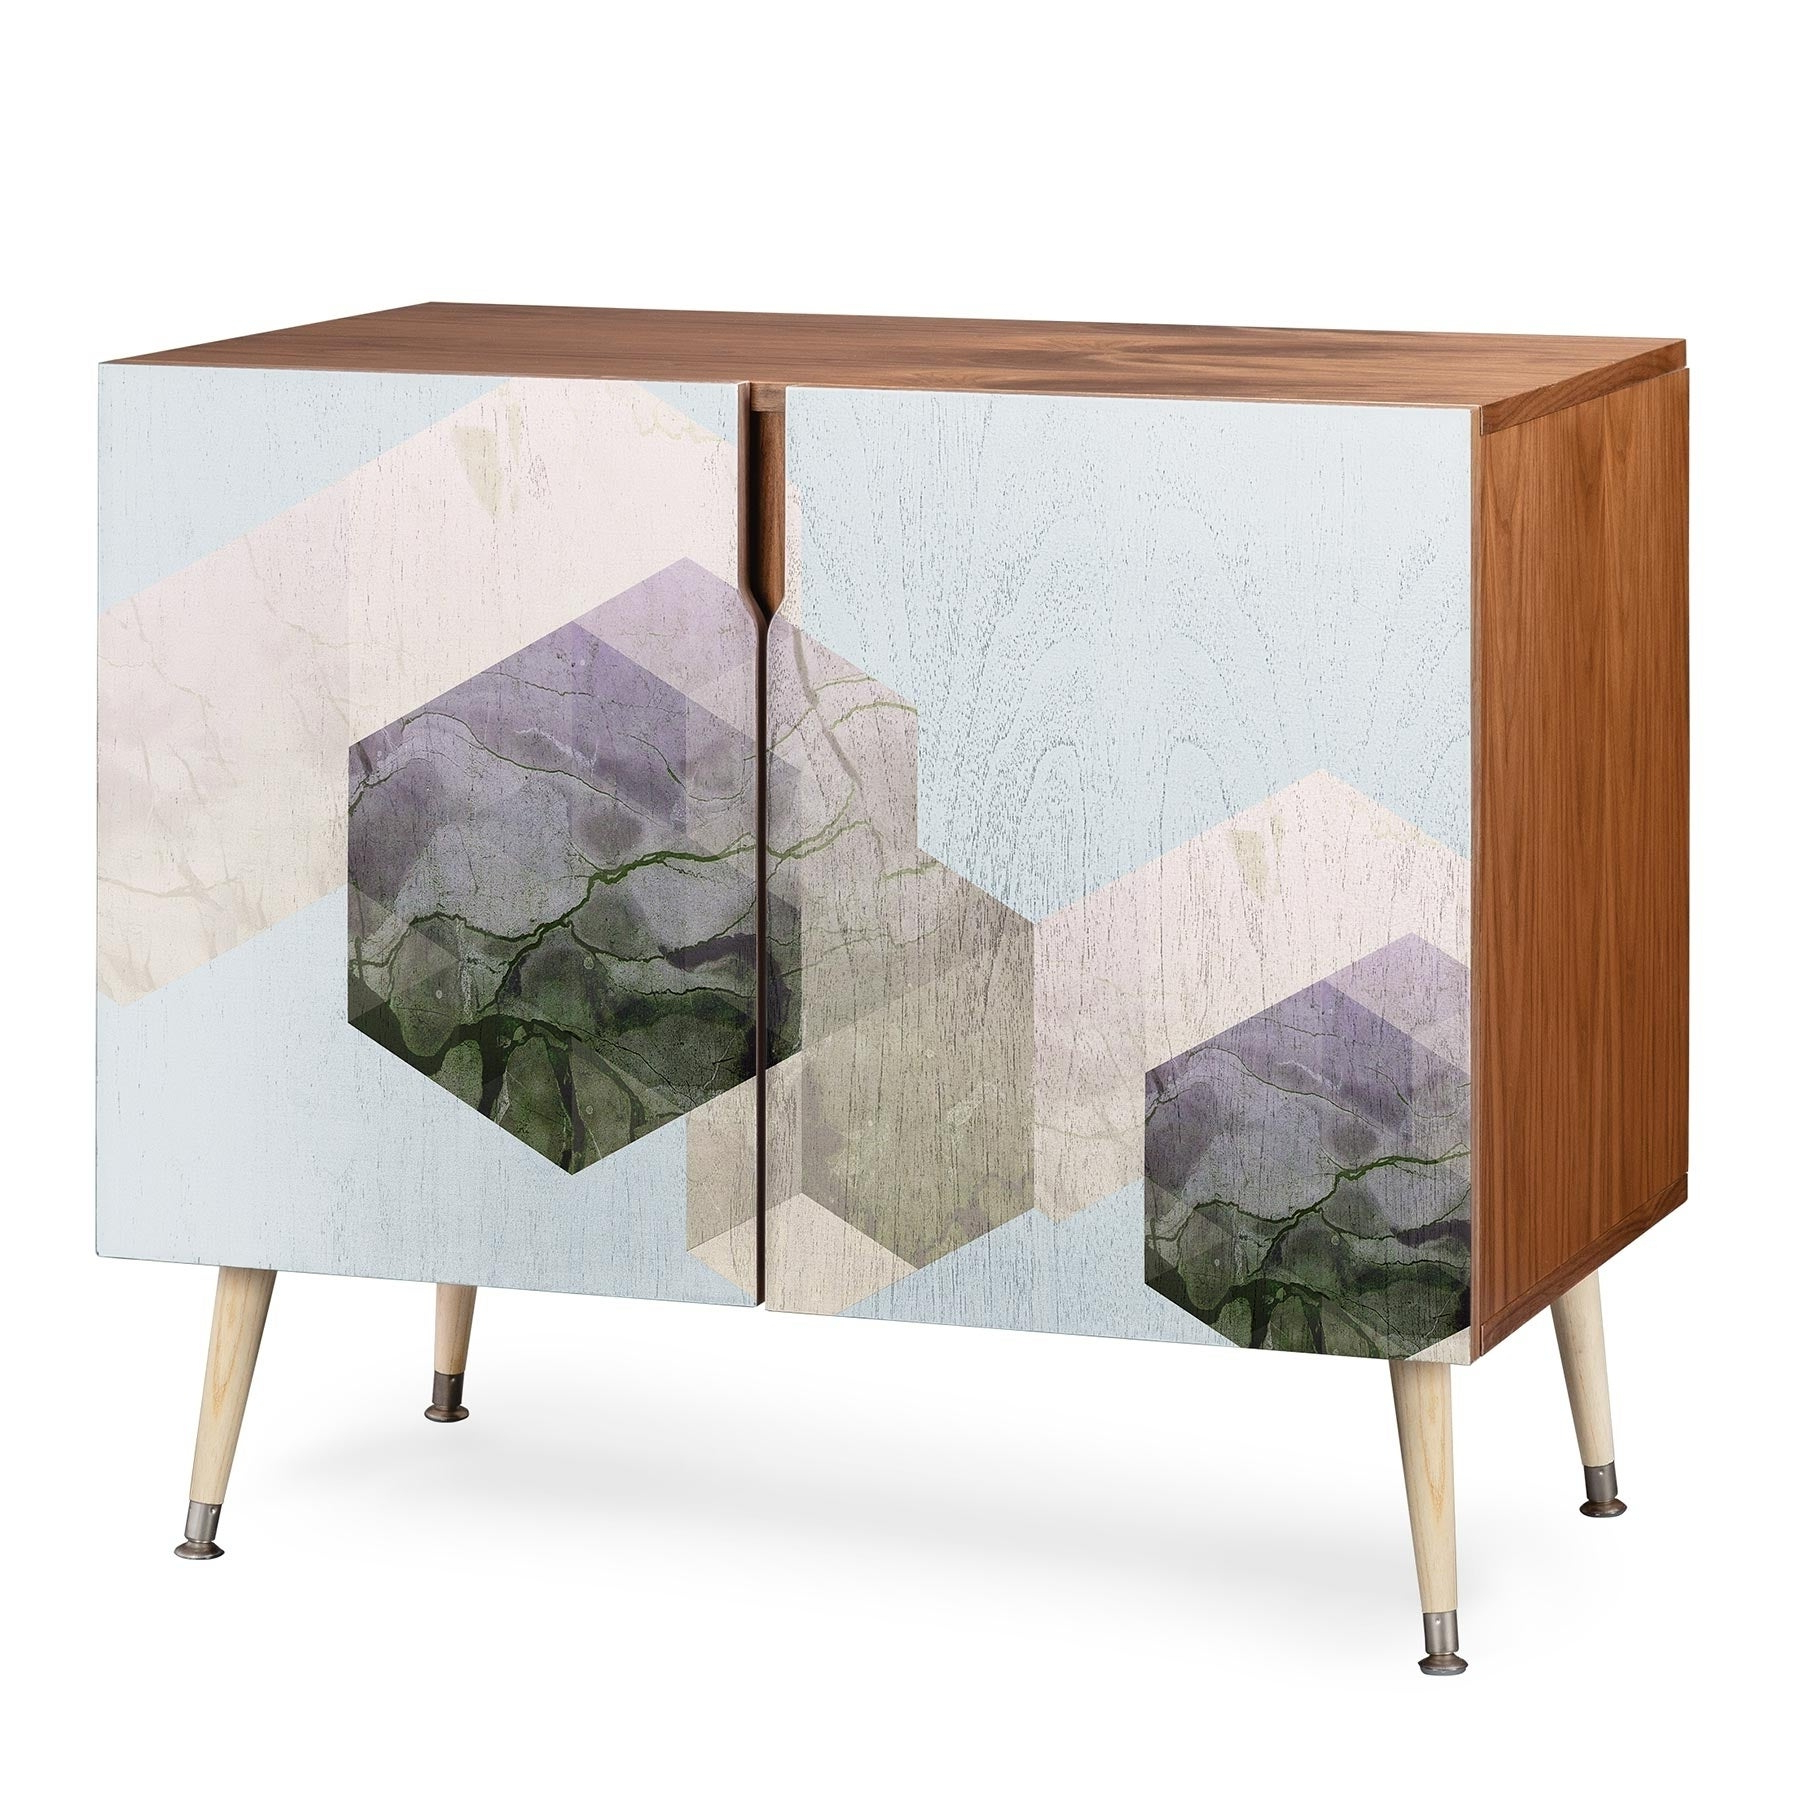 Deny Designs Emanuela Wood Geometric Patterned Credenza Throughout Wooden Deconstruction Credenzas (View 2 of 20)